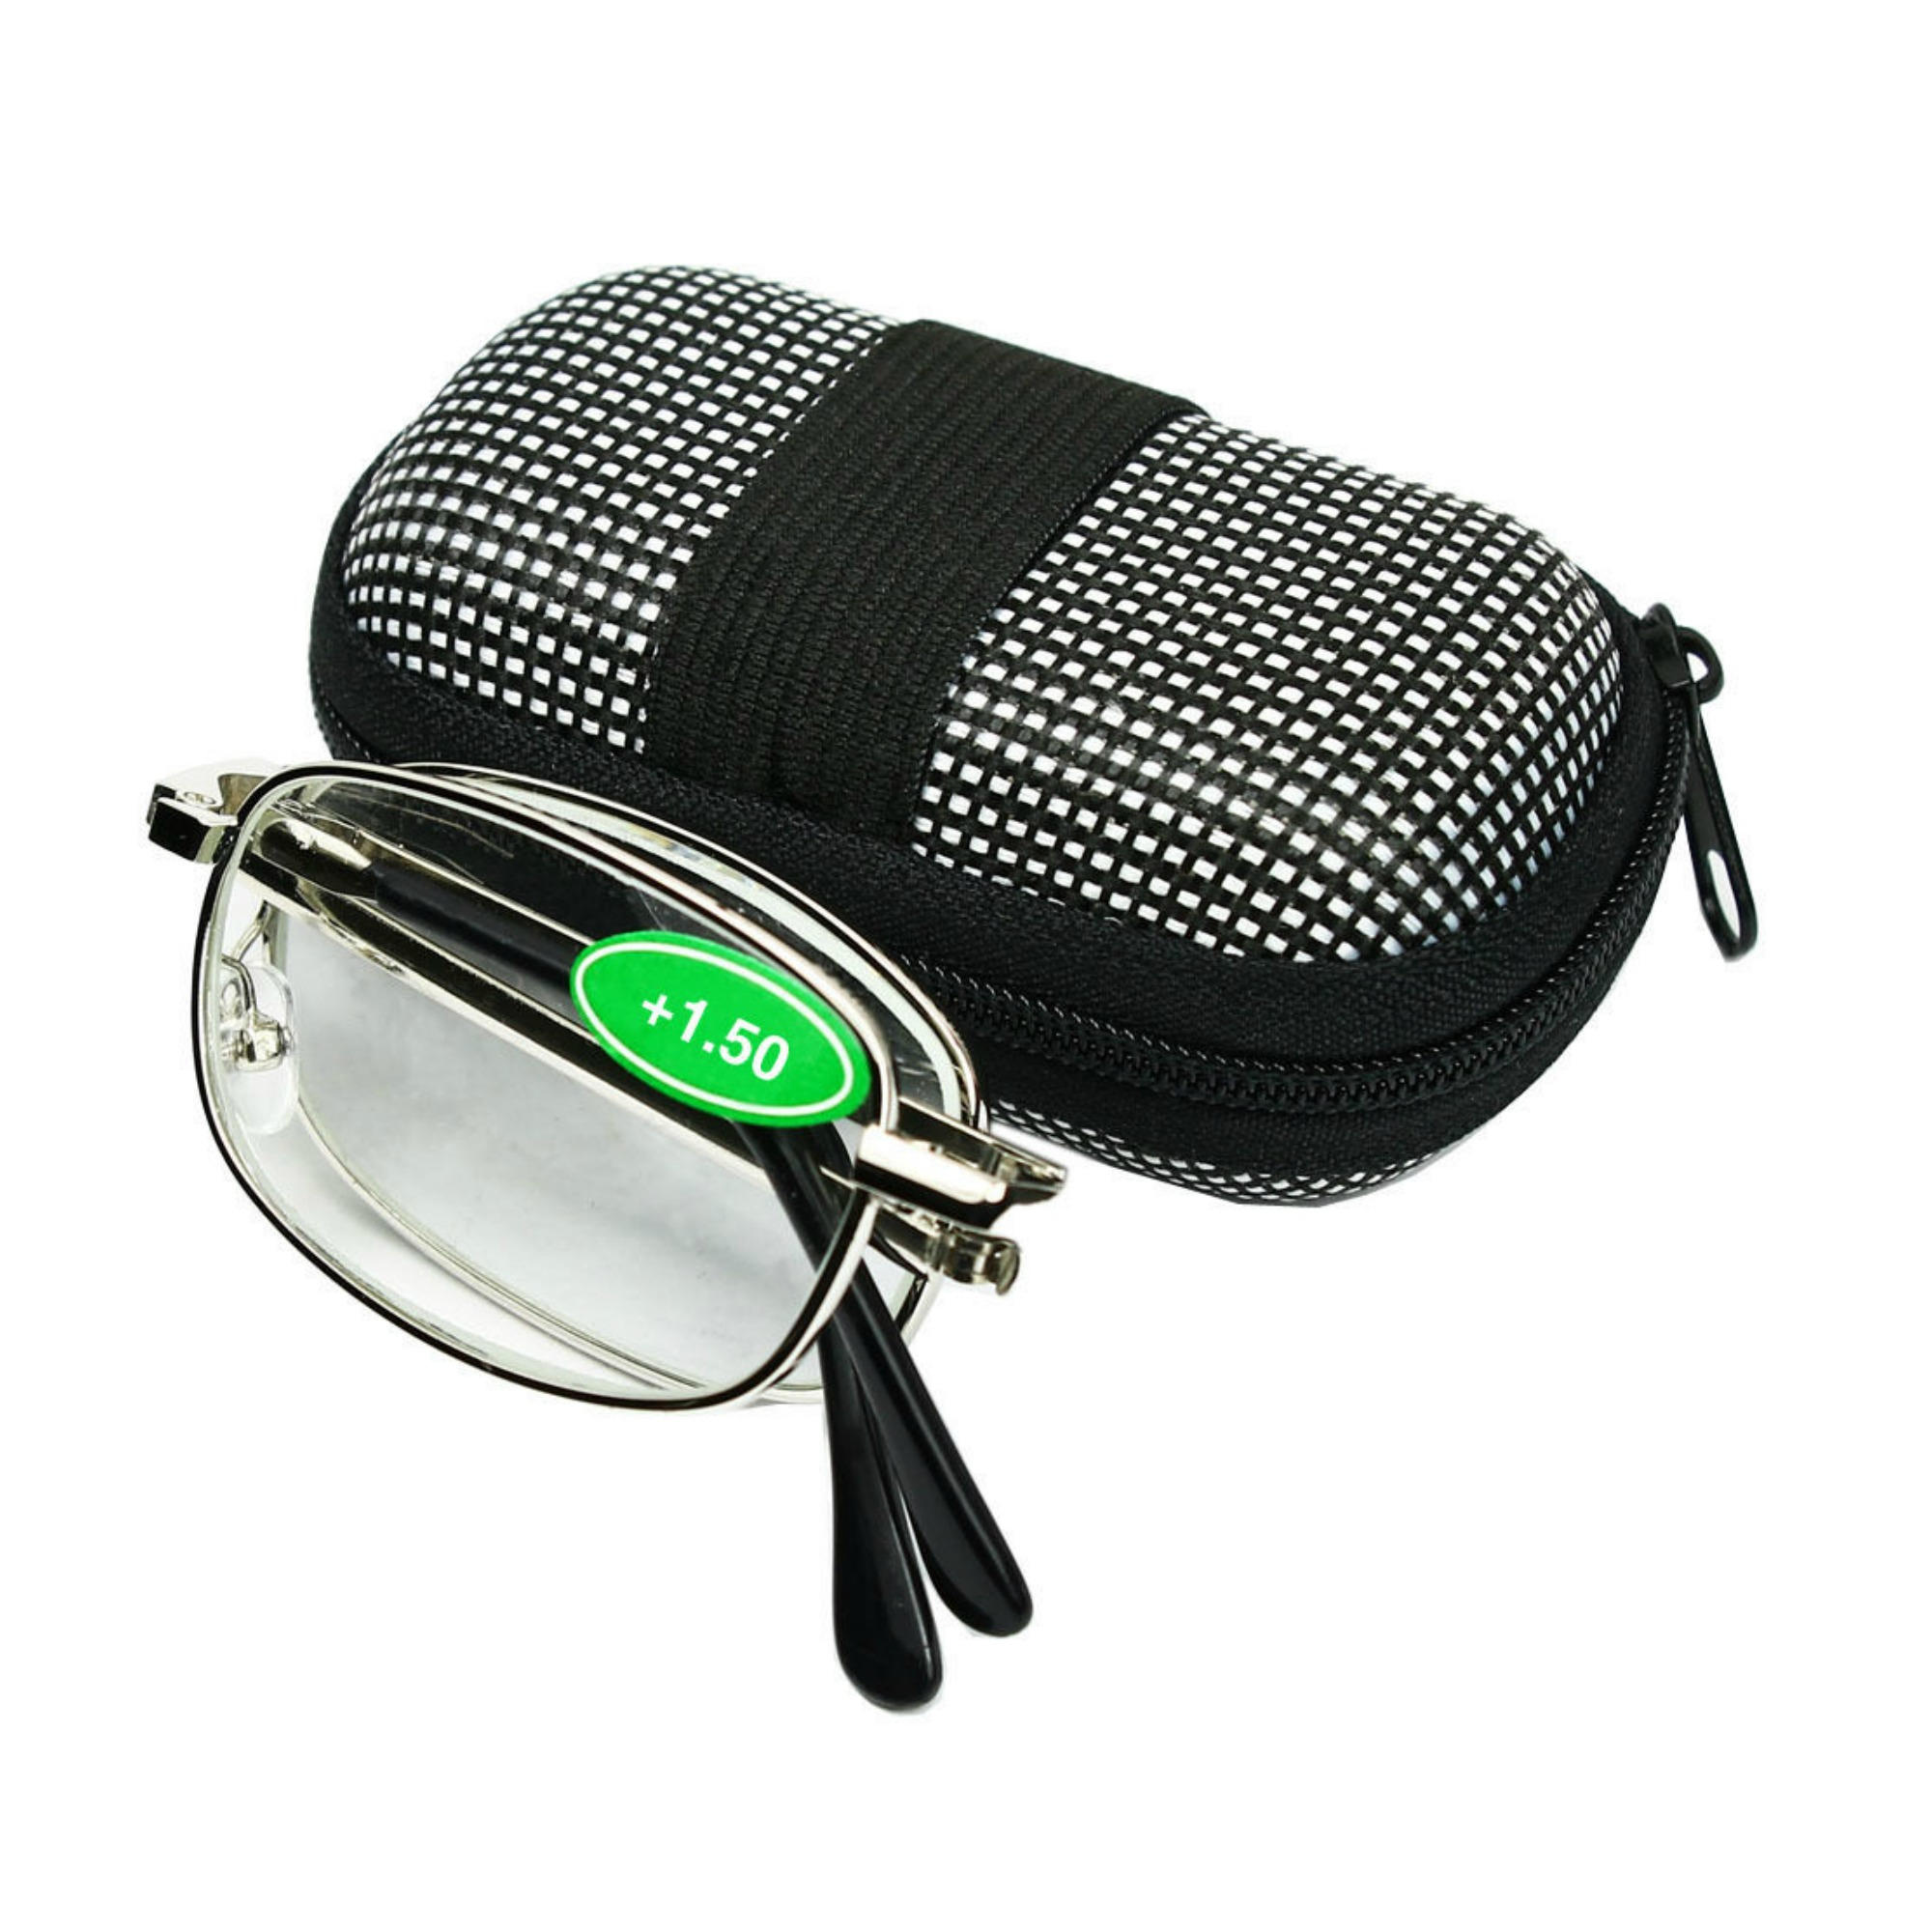 Magg Eyes Two way Foldable Readers in Portable Nylon Zip Cases Classic Silver Folding Reading Glasses for Men or Women (3 piece pack, 3.0)